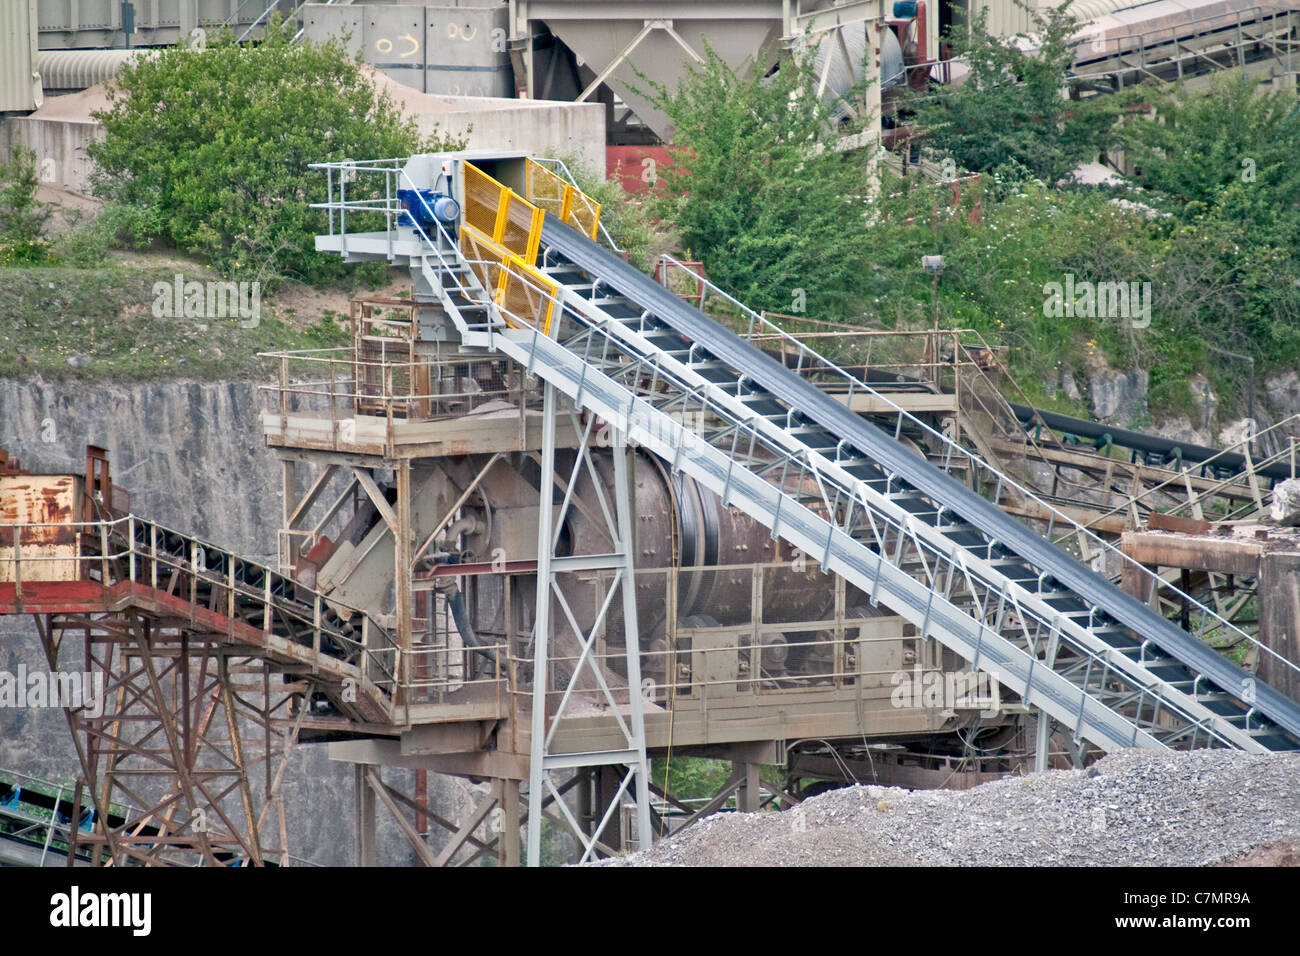 Conveyor belt in a large quarry ready to transport stone - Stock Image